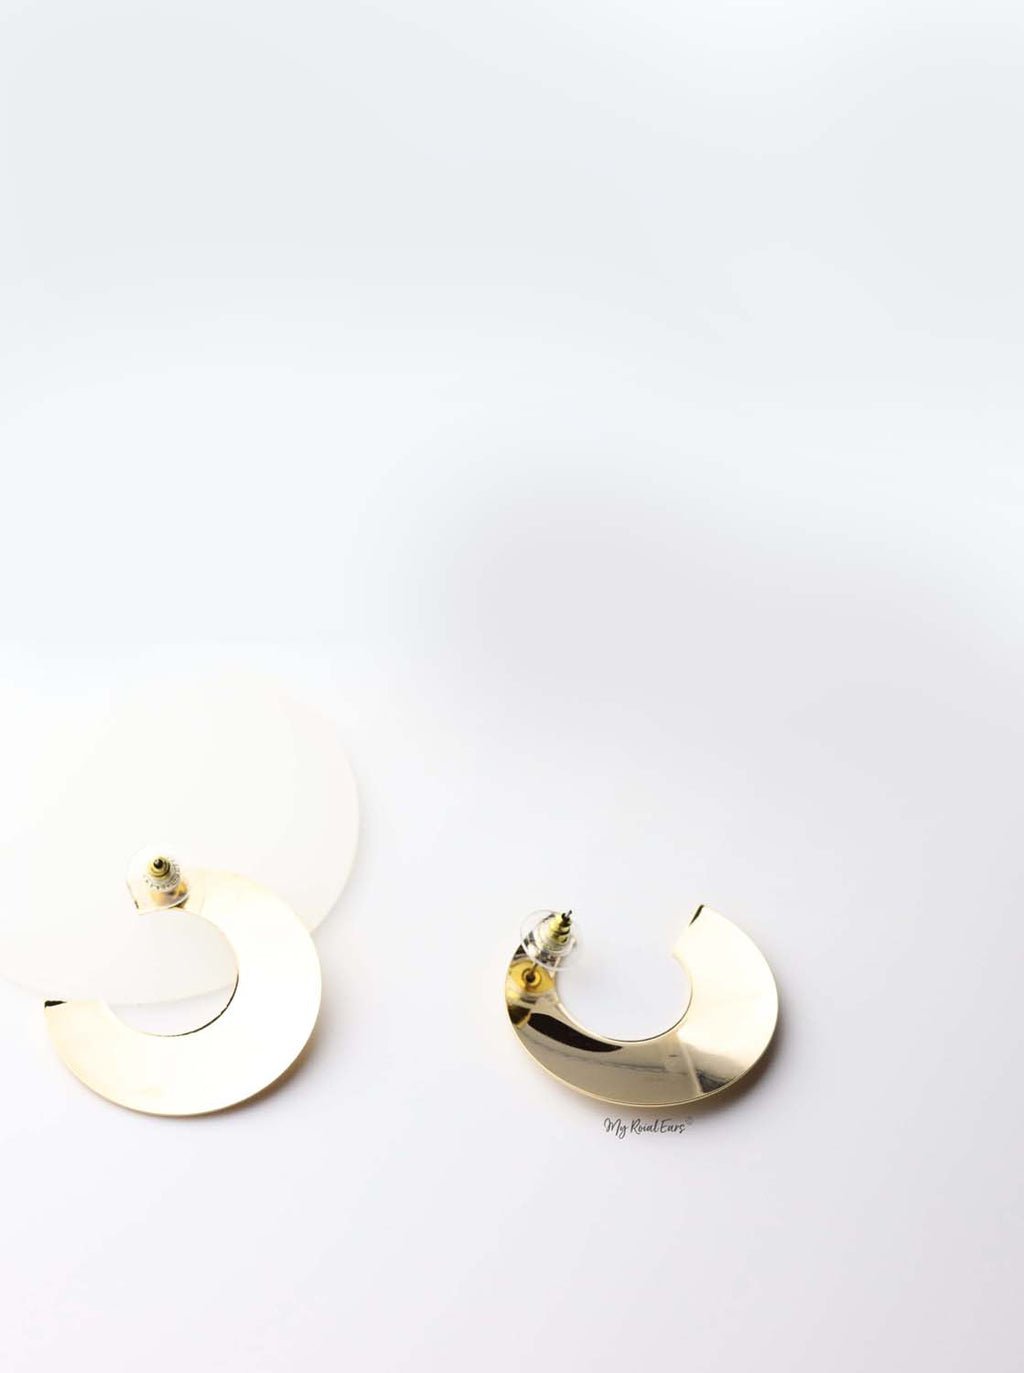 Bia- gold plated half mood statement stud earrings - My Roial Ears LTD